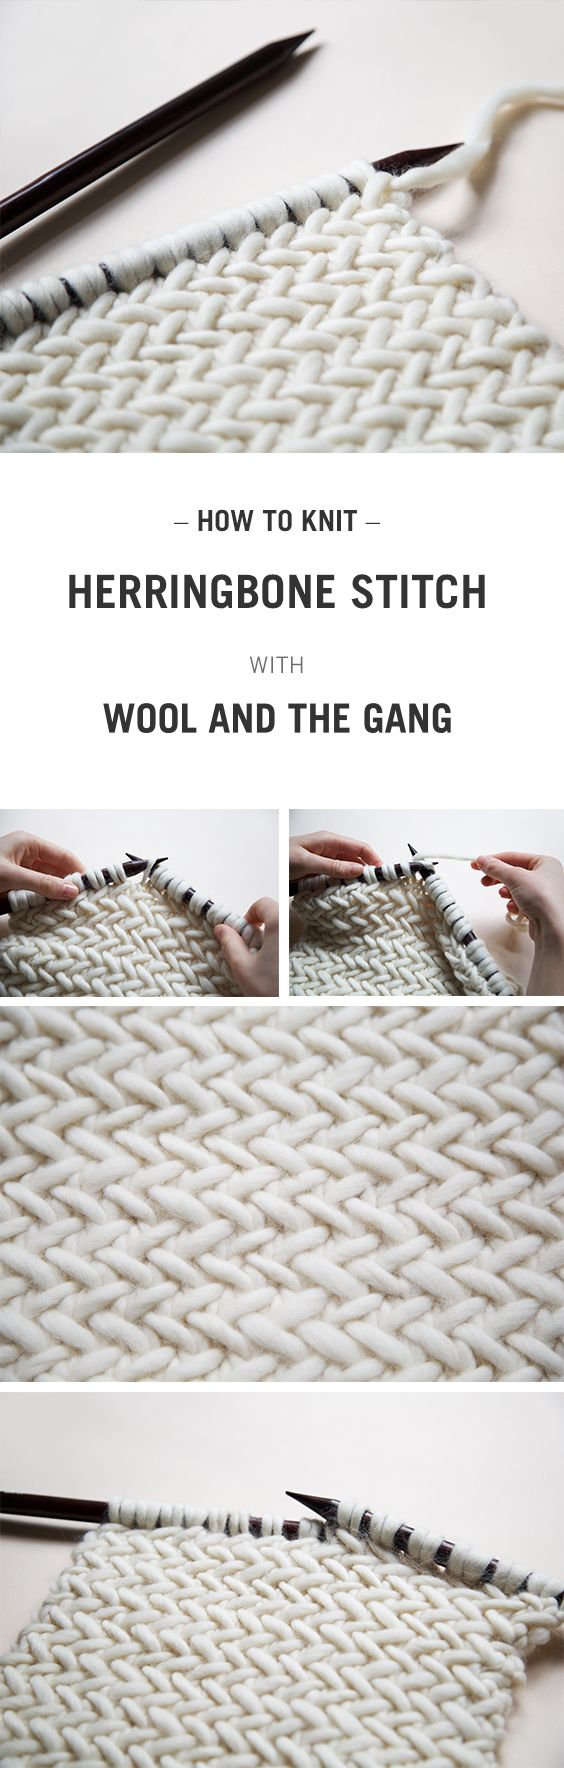 Herringbone Knit Stitch Blanket Pattern : HOW TO KNIT HERRINGBONE STITCH WITH WOOL AND THE GANG :) HOW TO KNIT Pint...